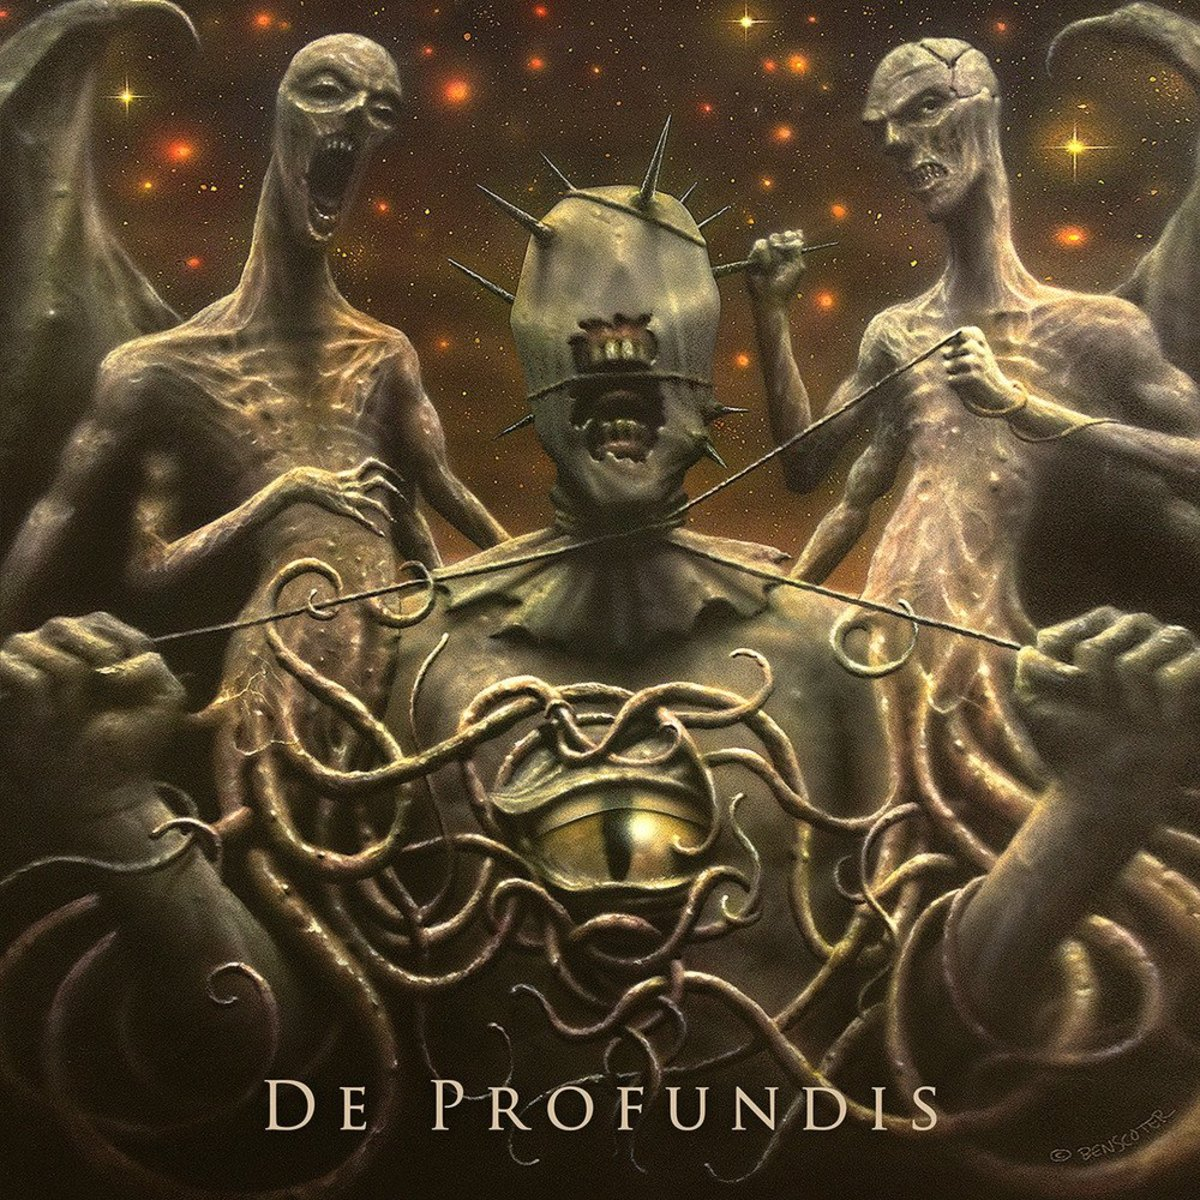 review-of-the-album-de-profundis-by-polish-death-metal-band-vader